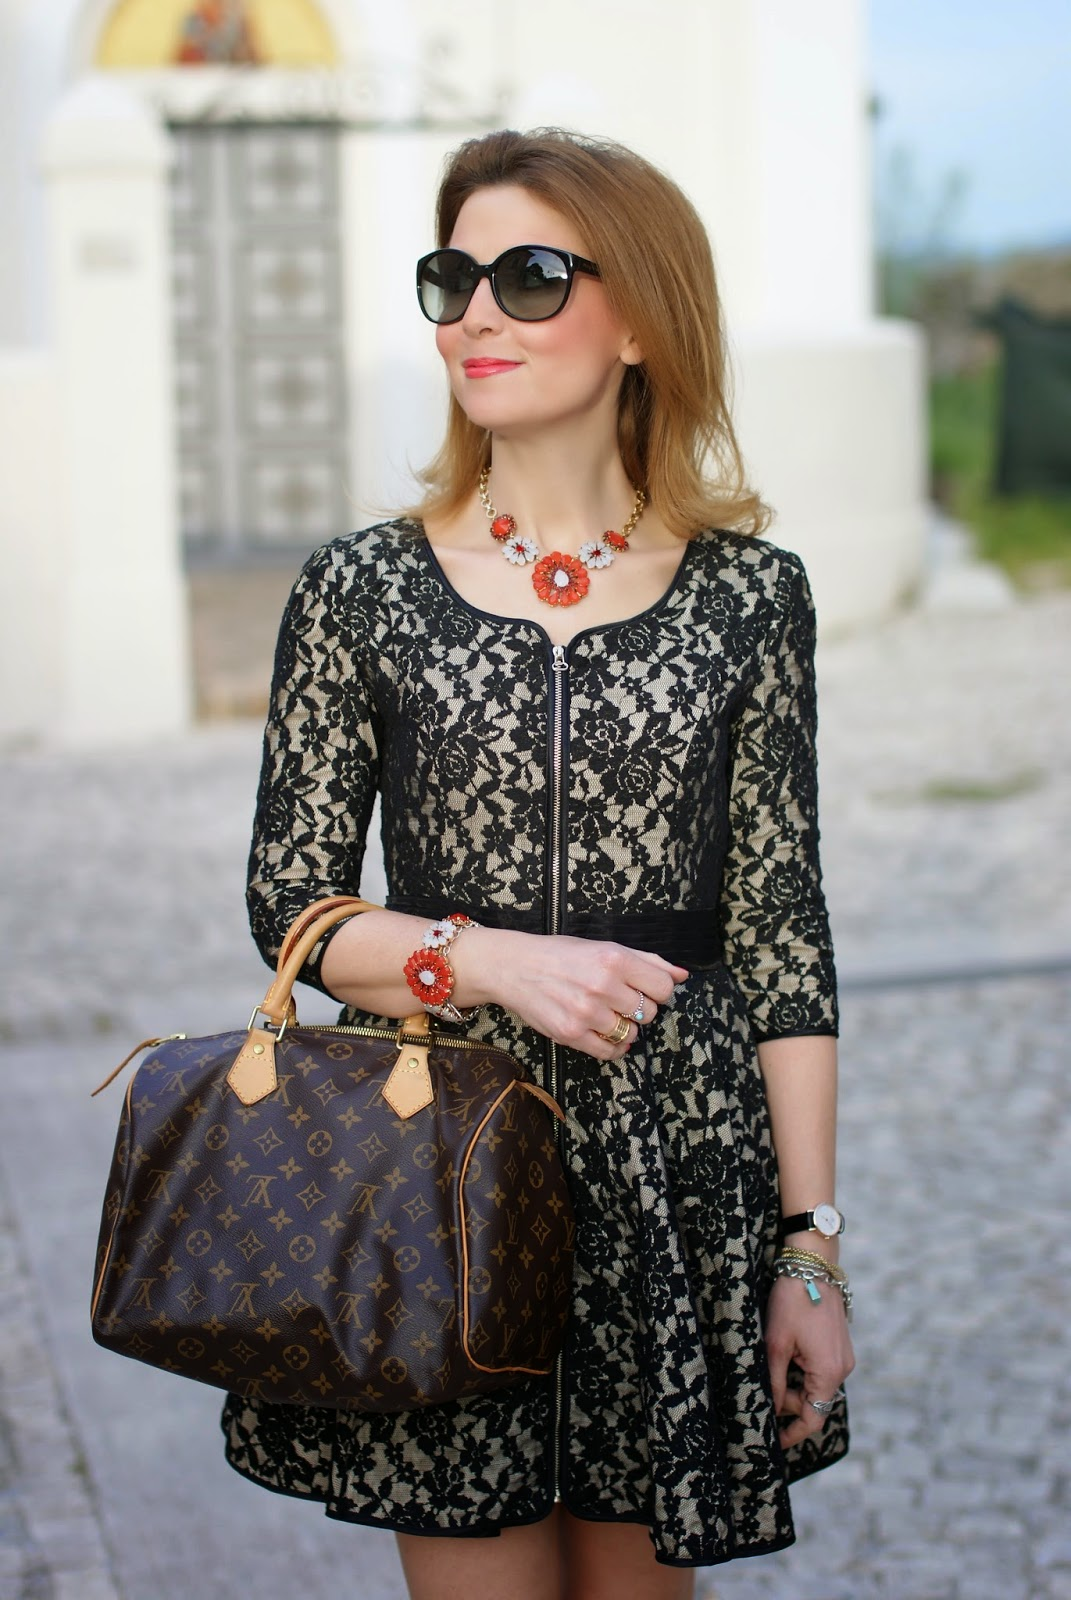 Blackfive black lace dress, Sodini bijoux, Louis Vuitton Speedy bag, Daniel Wellington watch, Fashion and Cookies, fashion blogger